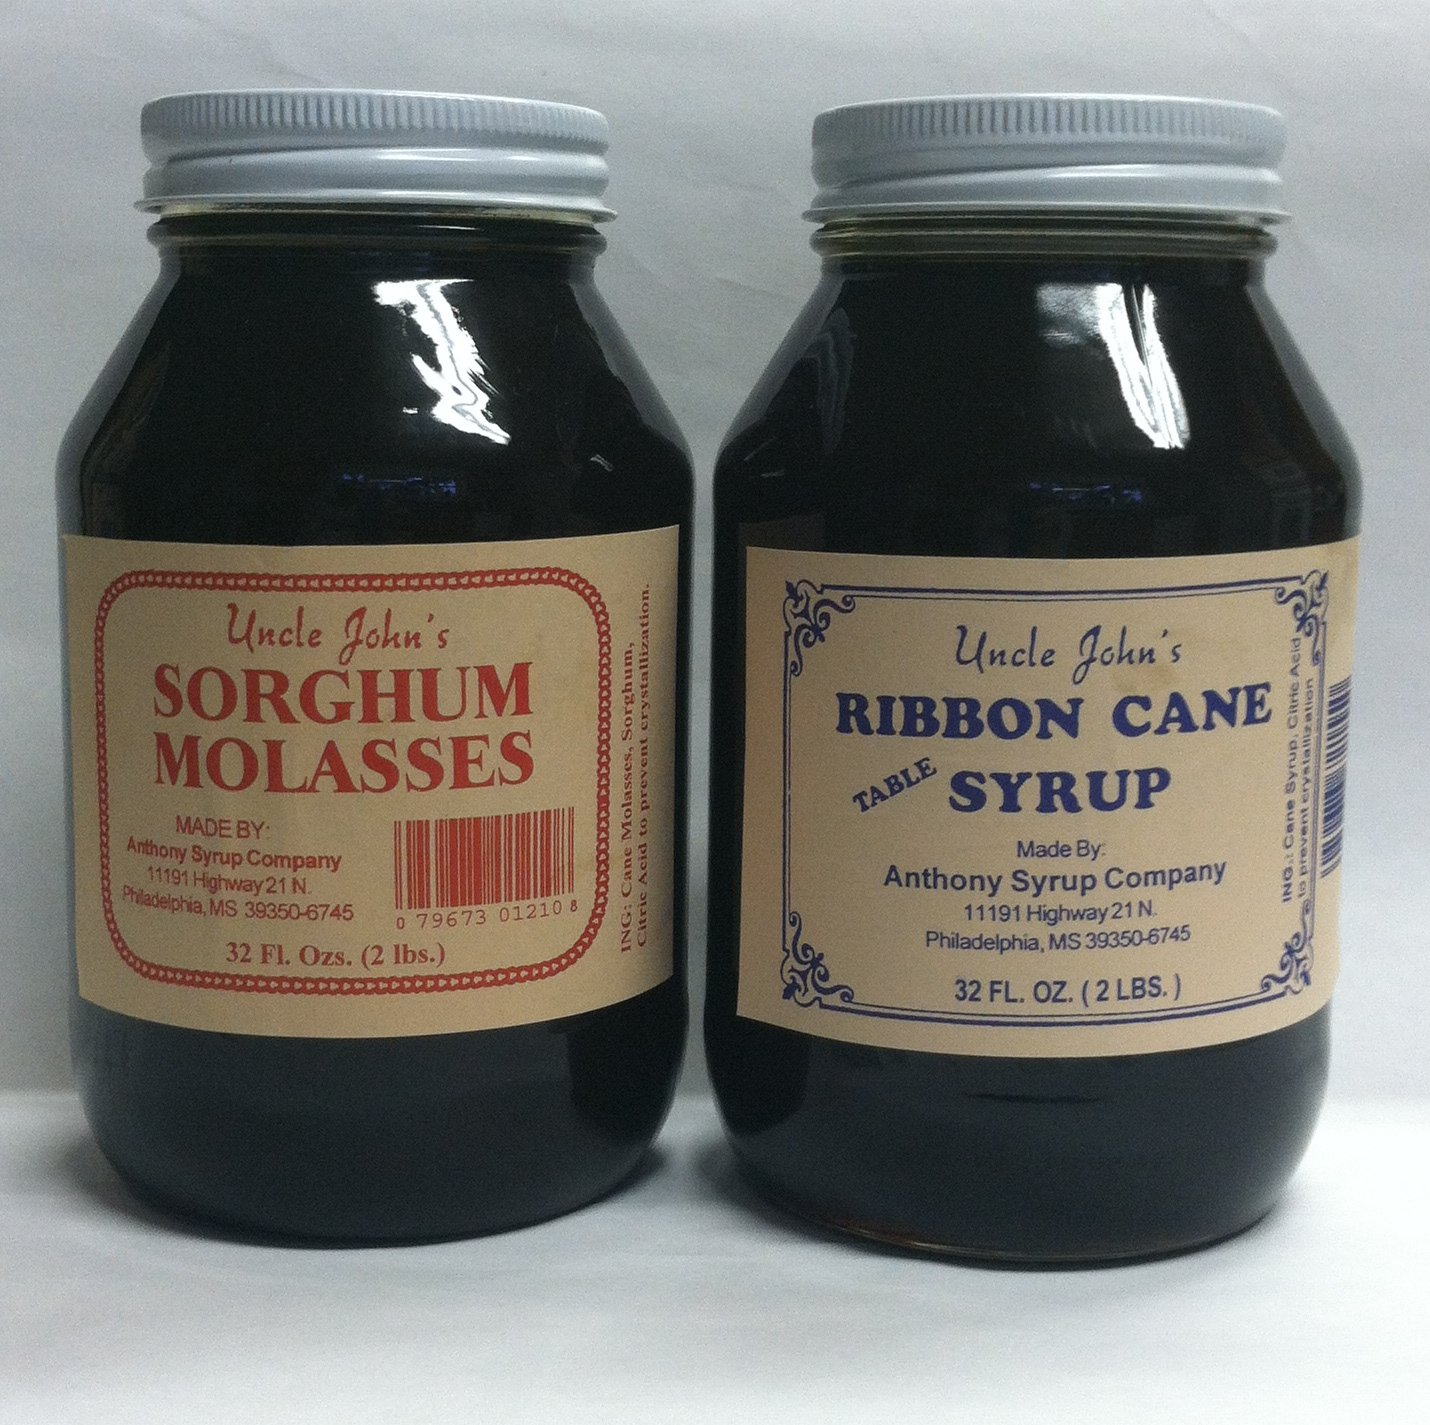 Uncle Johns Ribbon Cane Table Syrup and Sorghum Molasses Sampler Glass Quarts by Uncle John''s (Image #1)